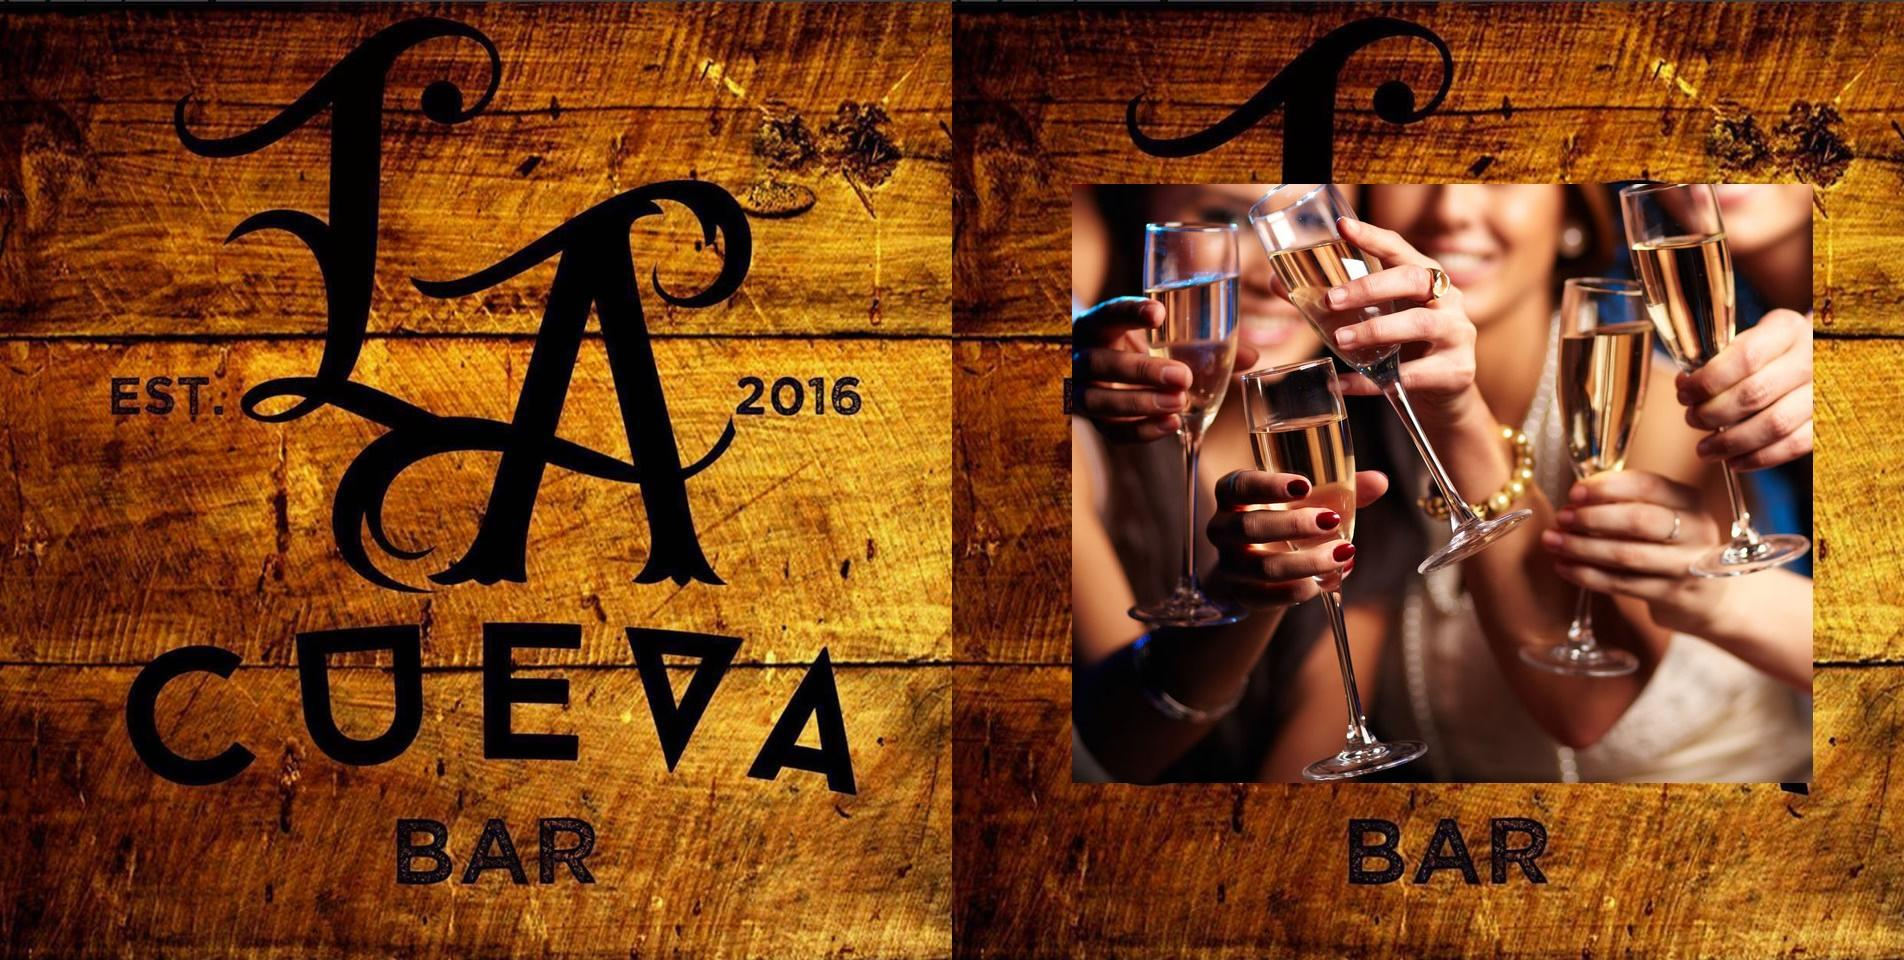 FREE ENTRANCE and Complimentary Champagne FOR LA CUEVA in Brickell!. FREE ENTRANCE and Complimentary Champagne FOR LA CUEVA in Brickell!